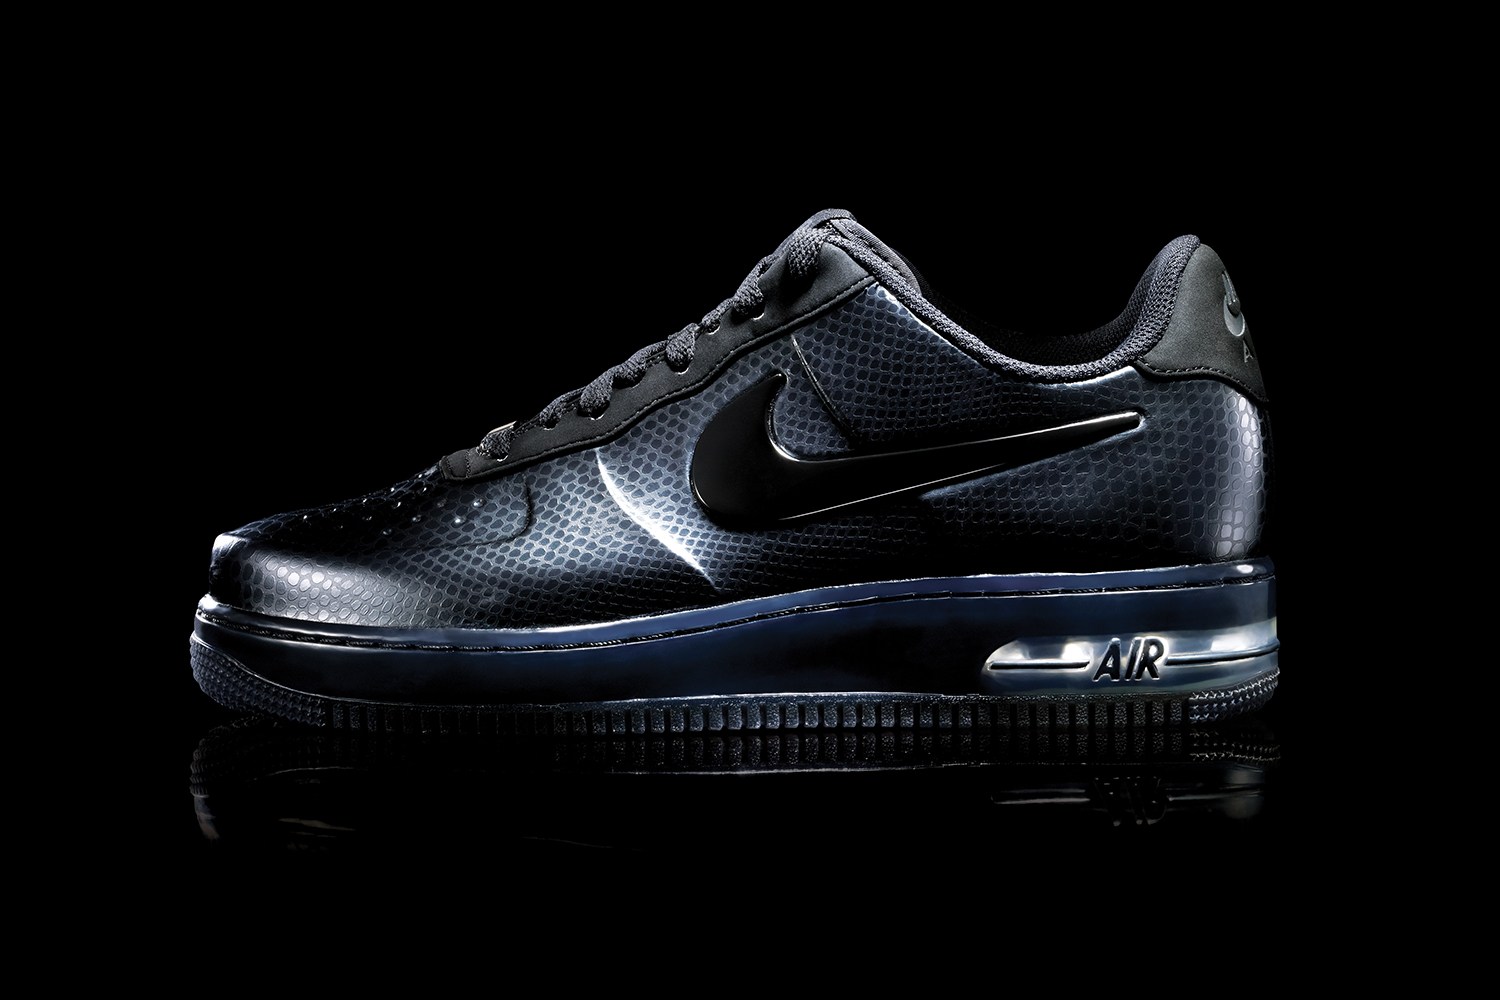 nike air force 1 foamposite 2013 year of the snake hypebeast. Black Bedroom Furniture Sets. Home Design Ideas